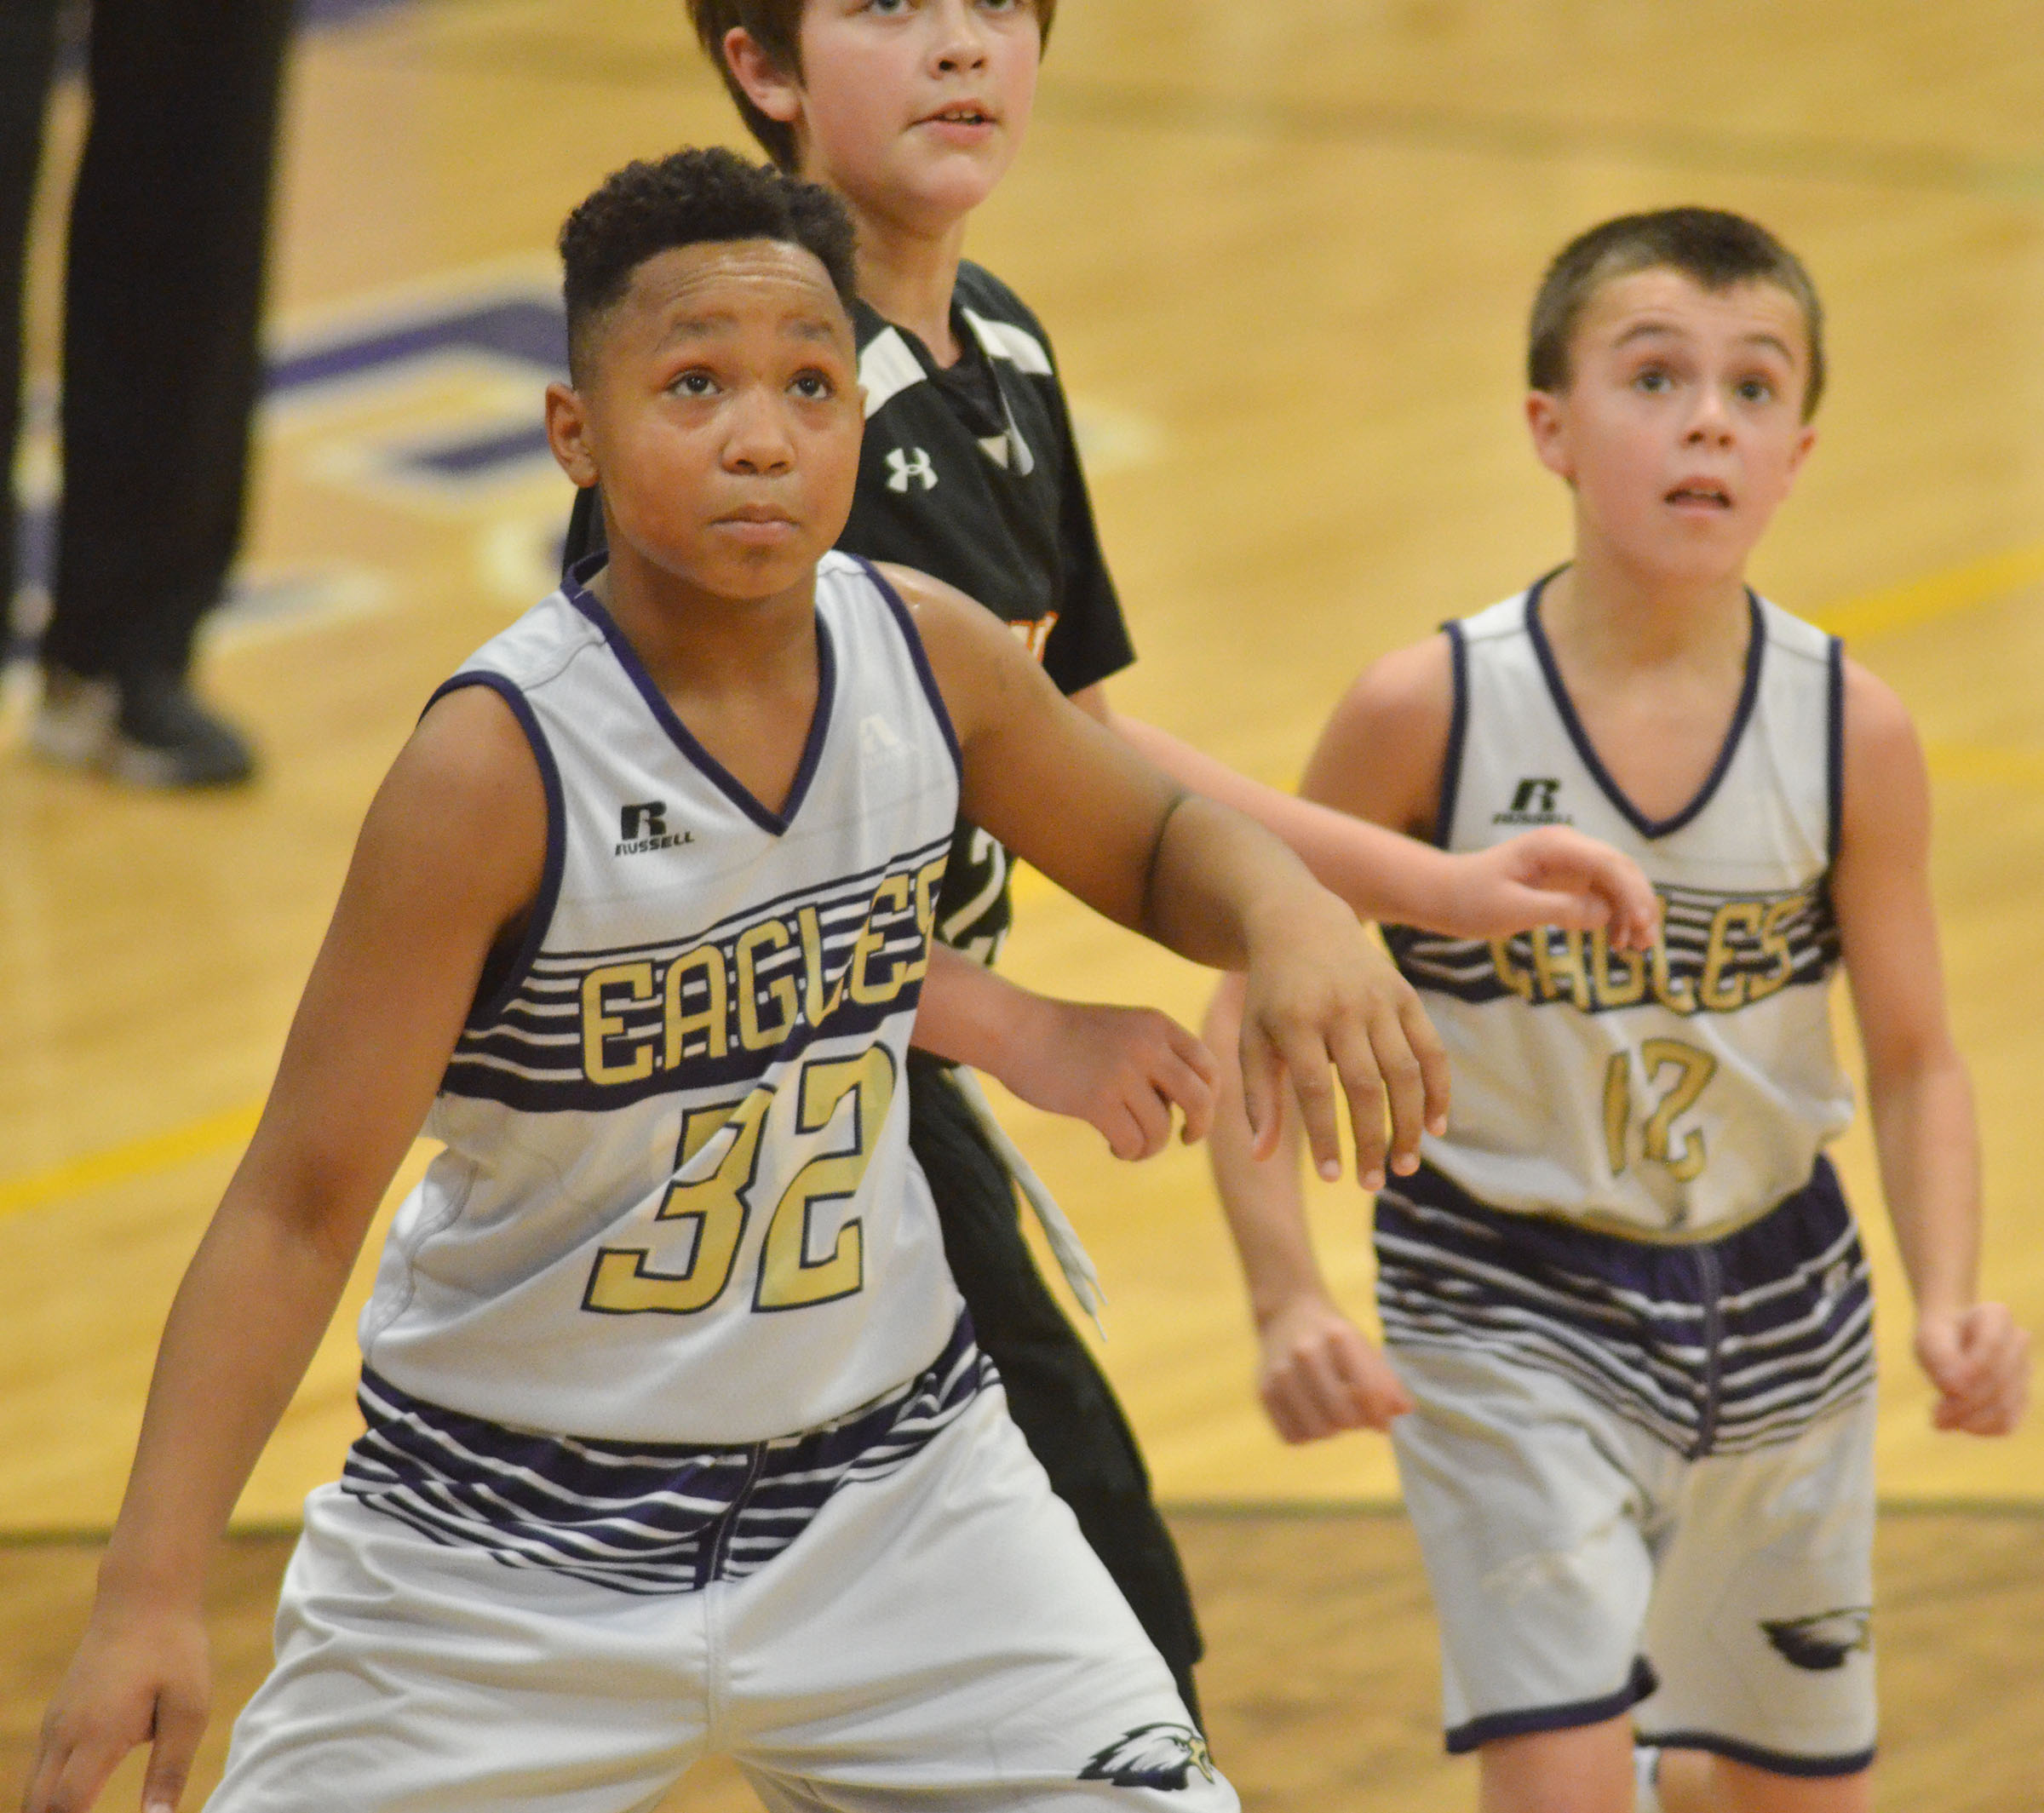 CMS sixth-grader Deondre Weathers looks for a rebound.